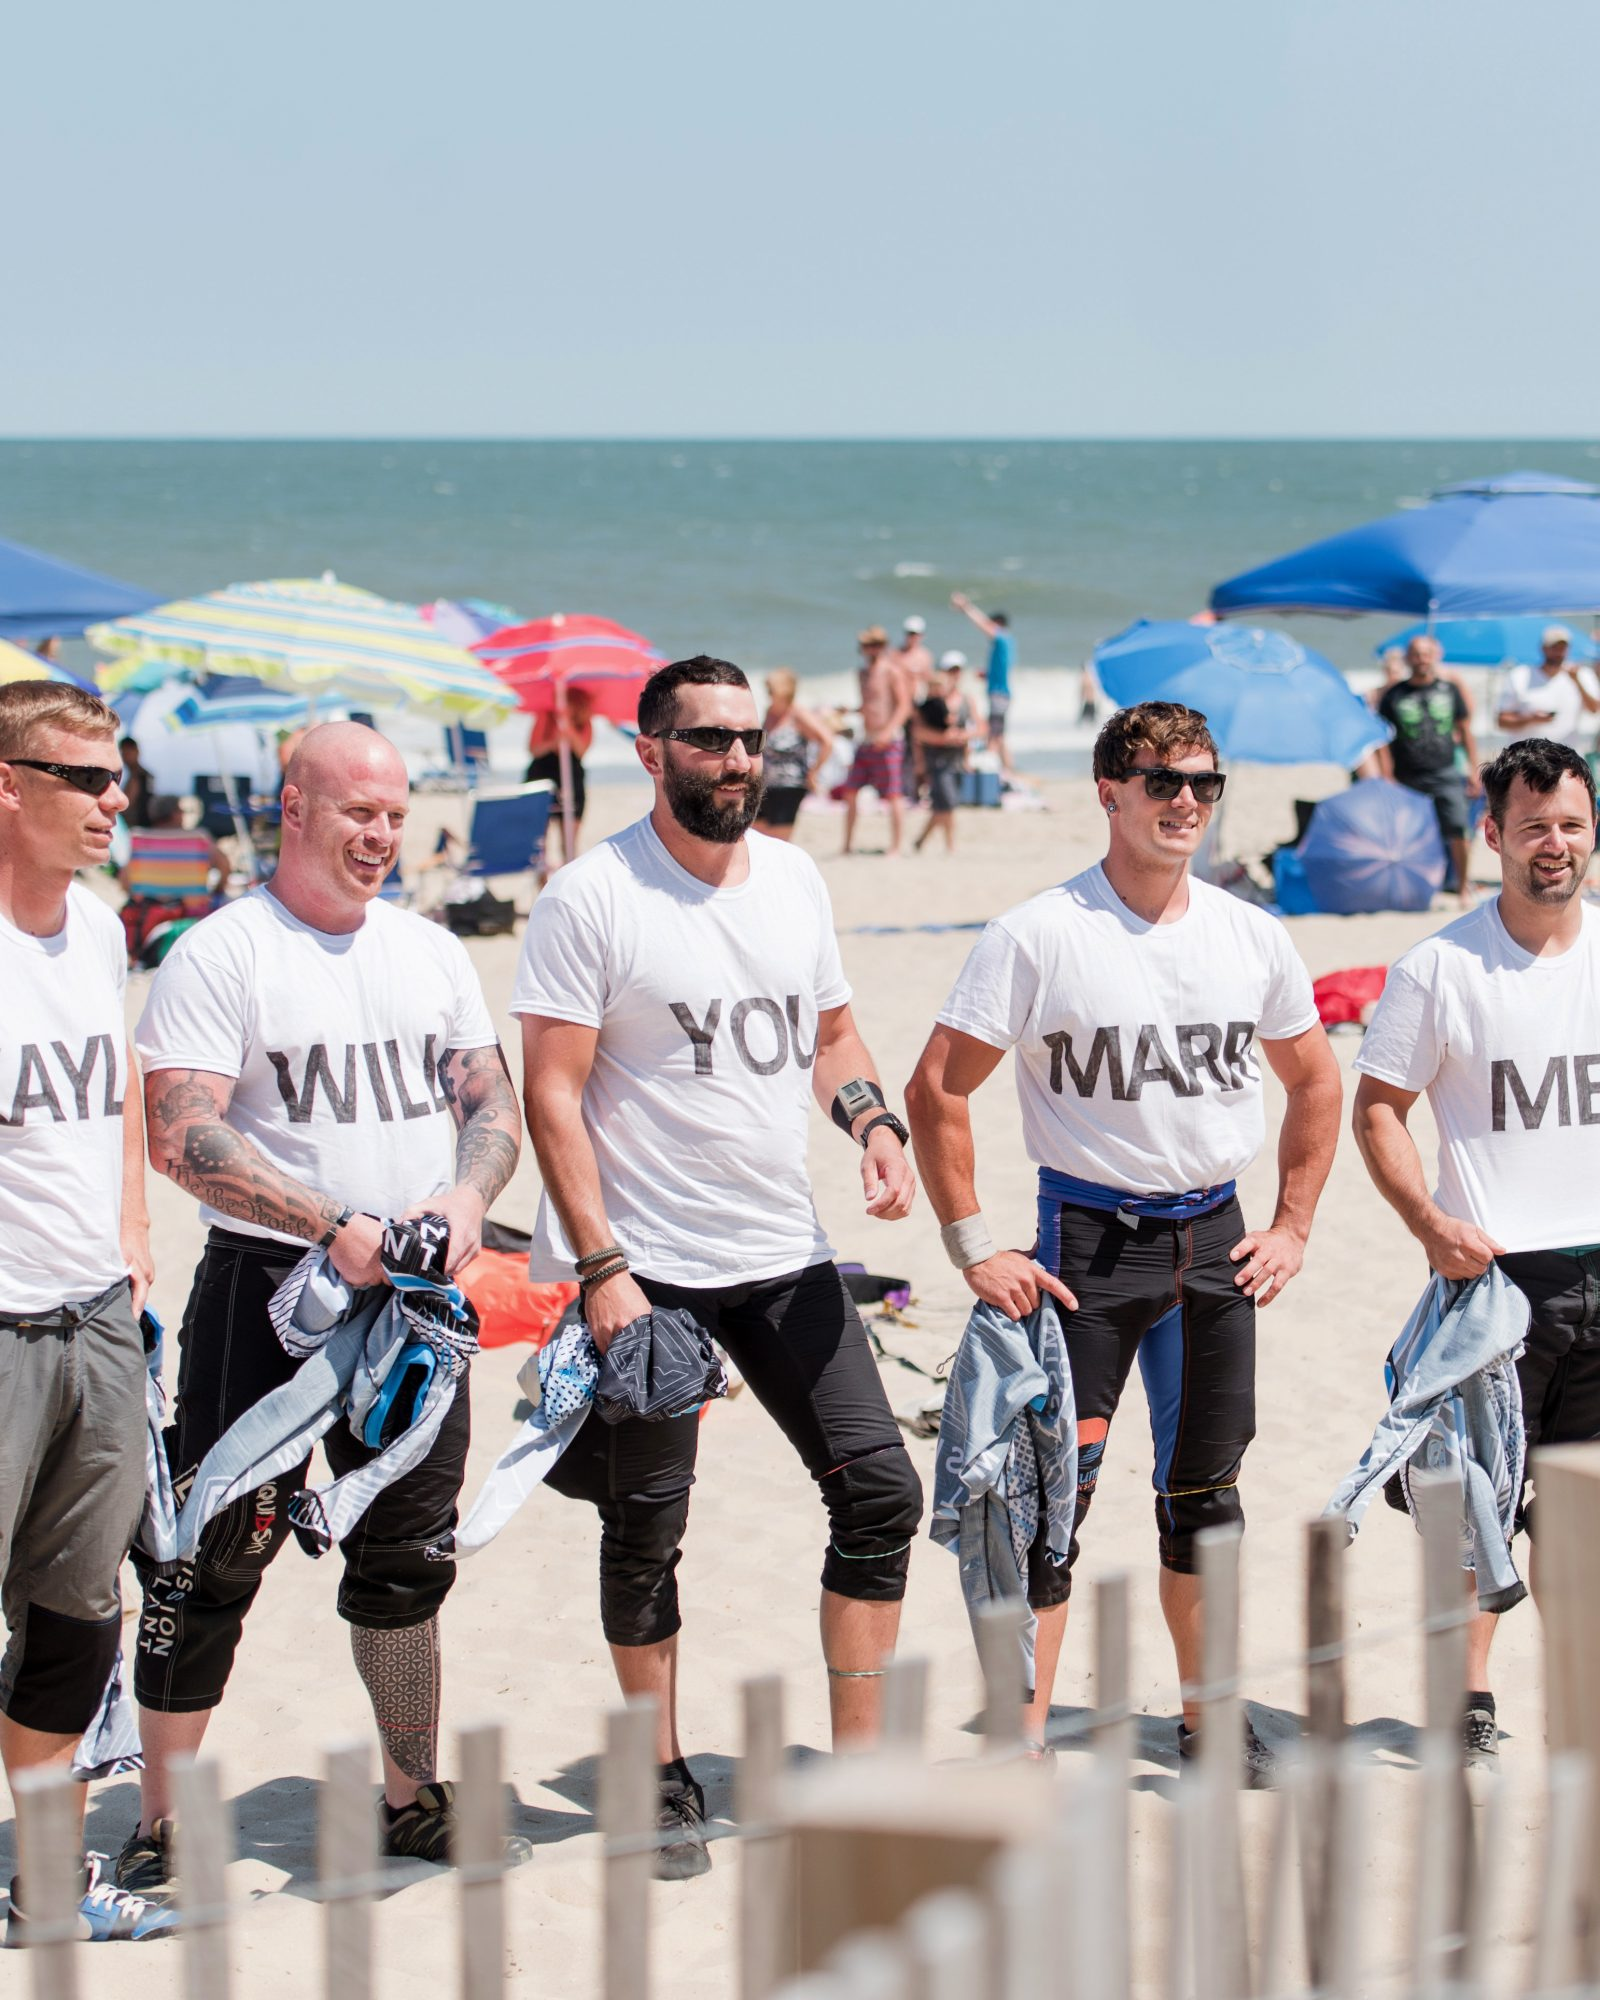 skydivers with proposal words on shirts